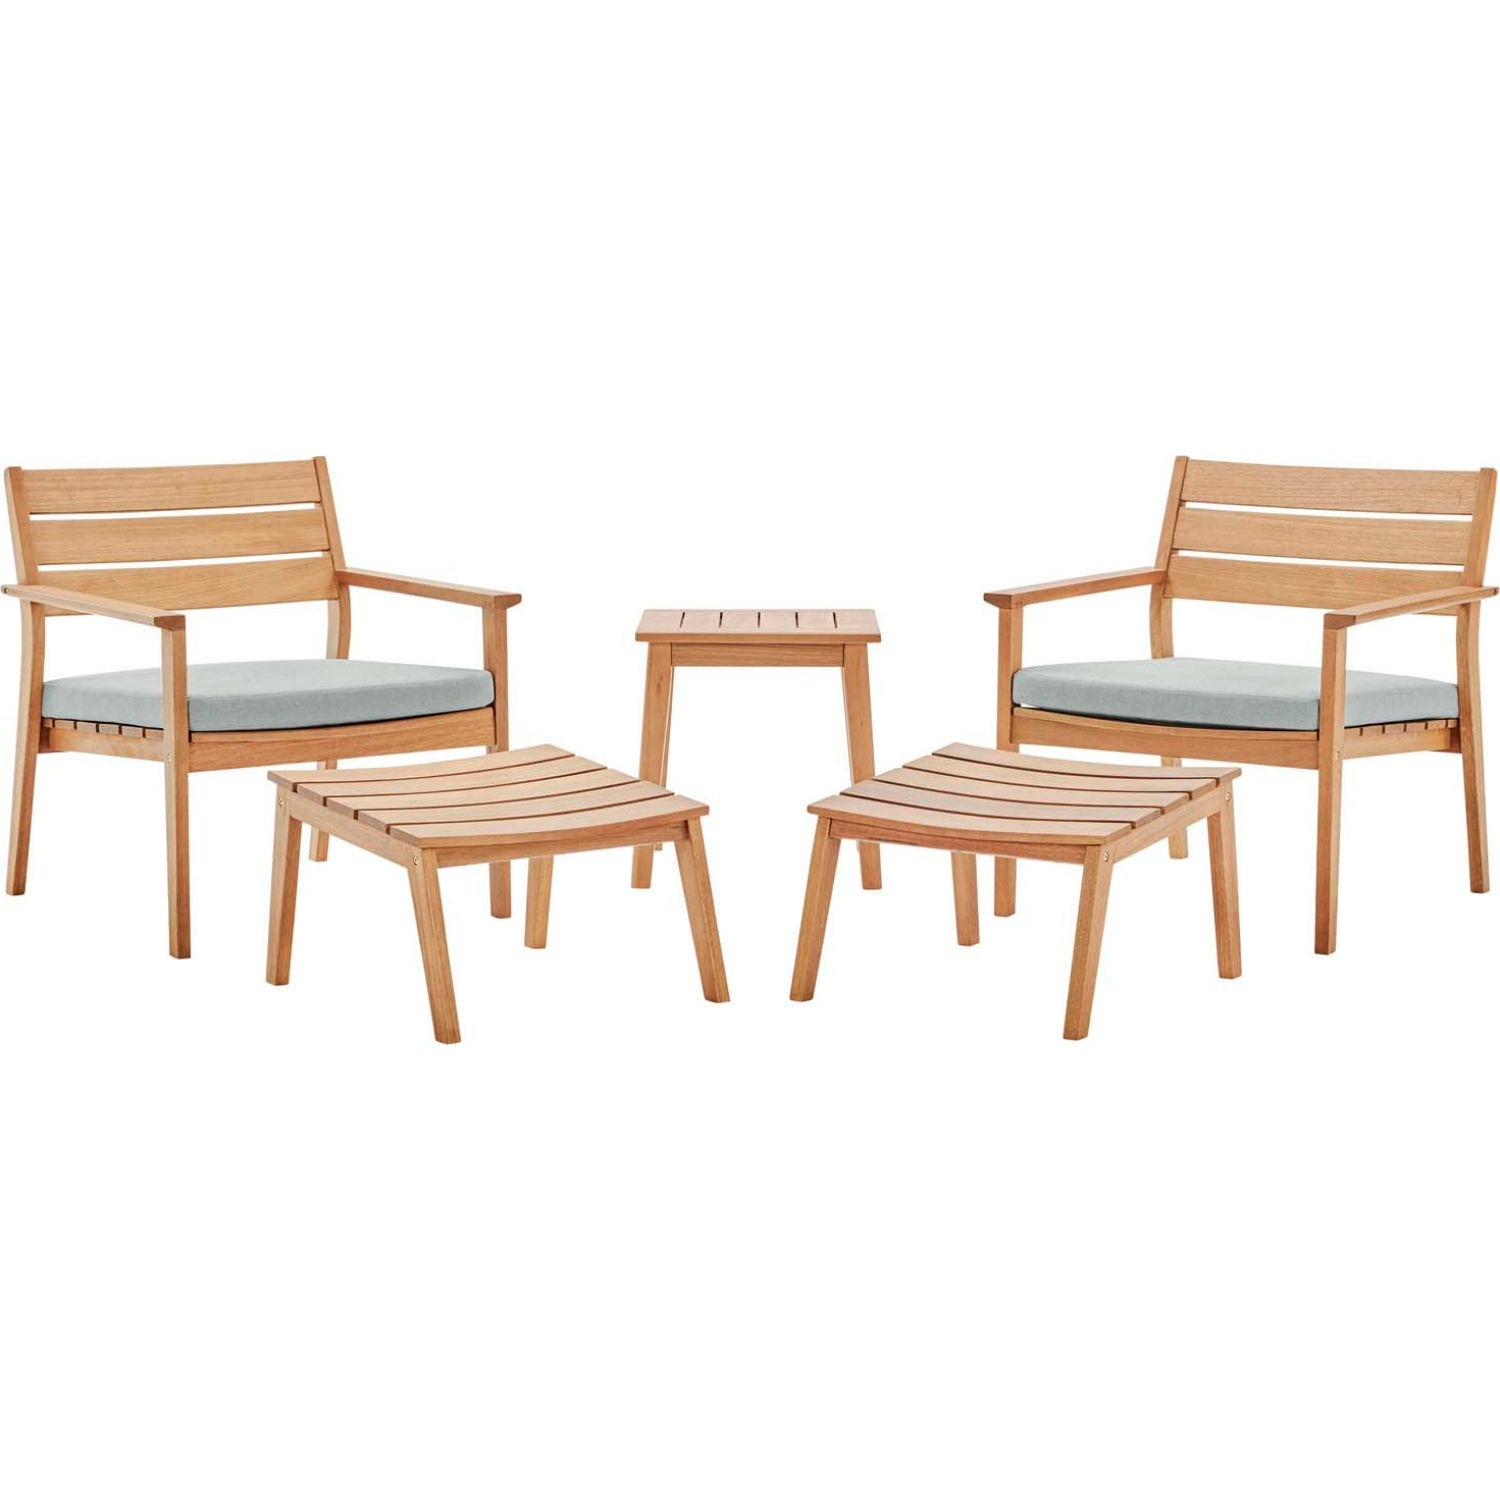 5-Piece Outdoor Patio Set In Ash Wood Finish - image-0